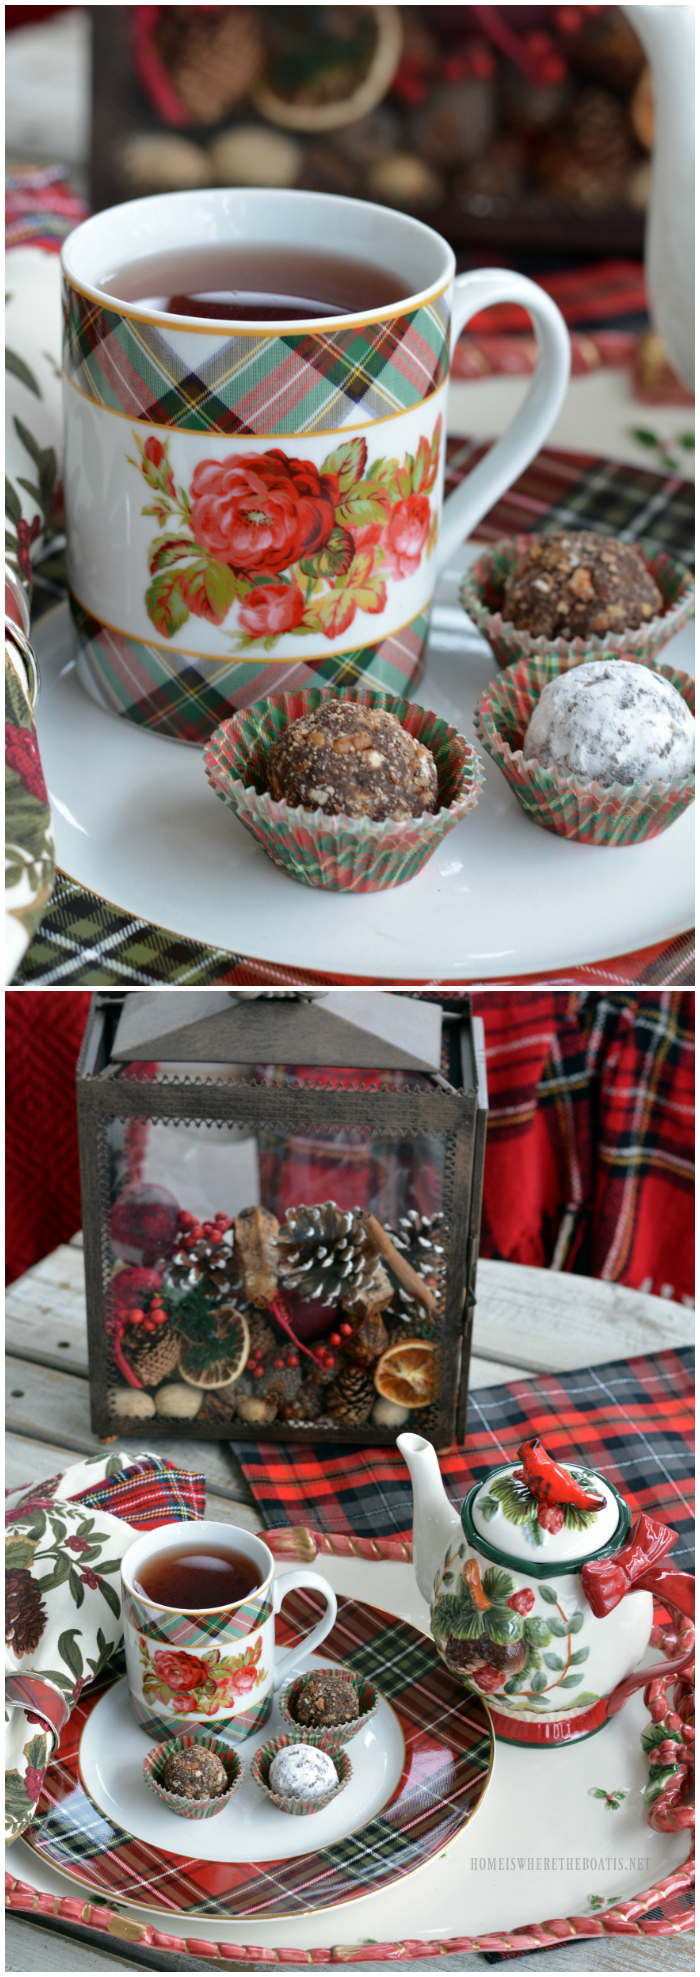 Pecan Bourbon Balls | ©homeiswheretheboatis.net #christmas #nobake #recipes